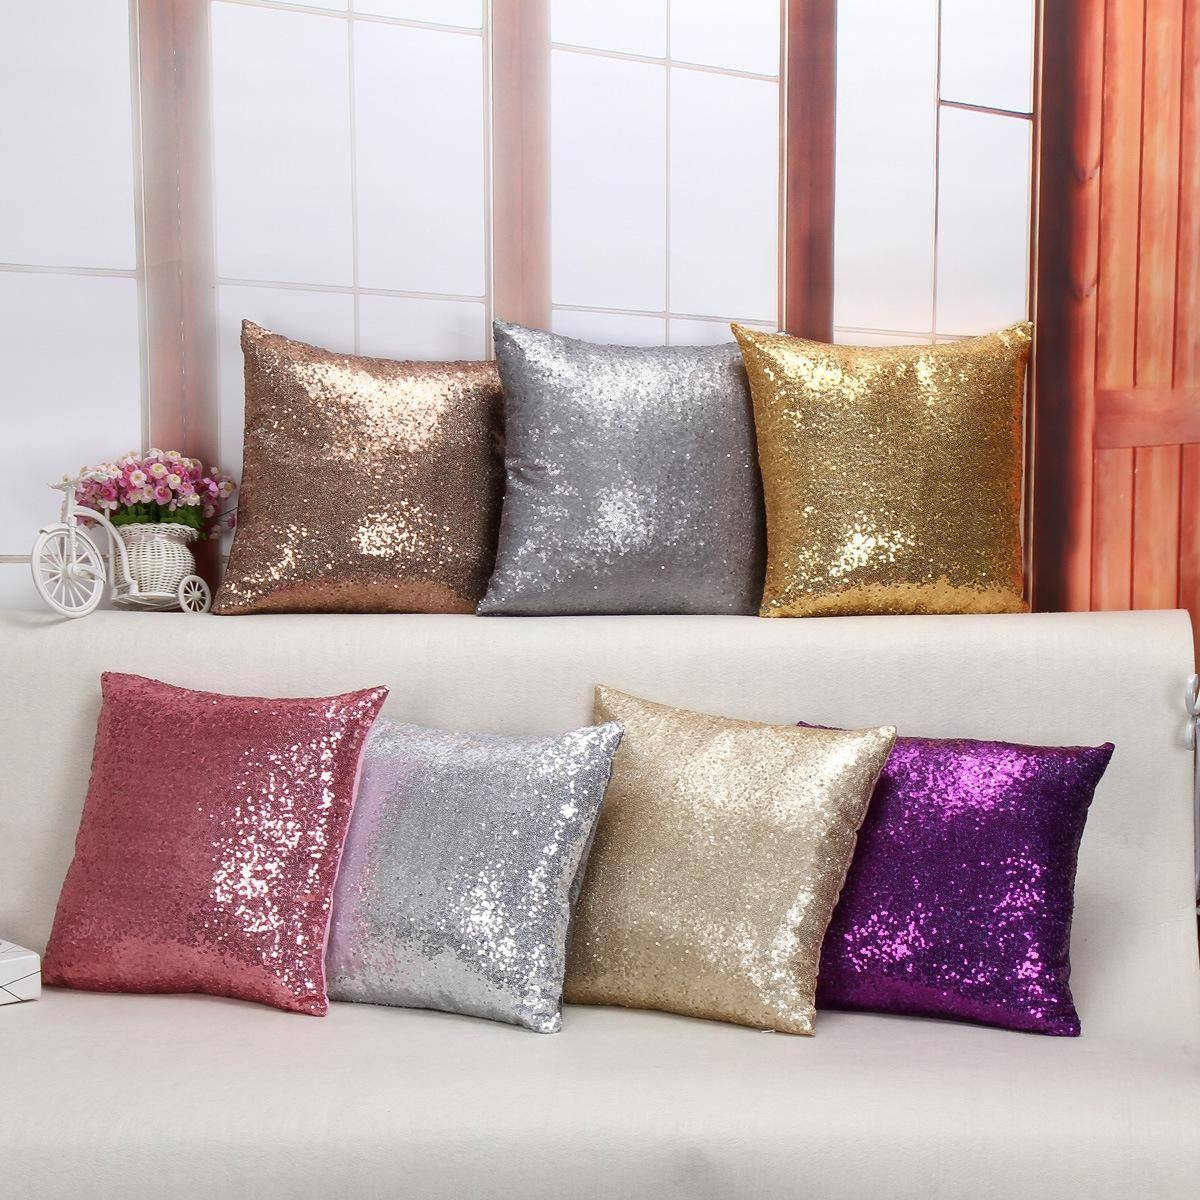 Christmas Home Decor Fashion Luxury 40*40Cm Sequin Cushion Cover within Sofa Cushion Covers (Image 2 of 15)